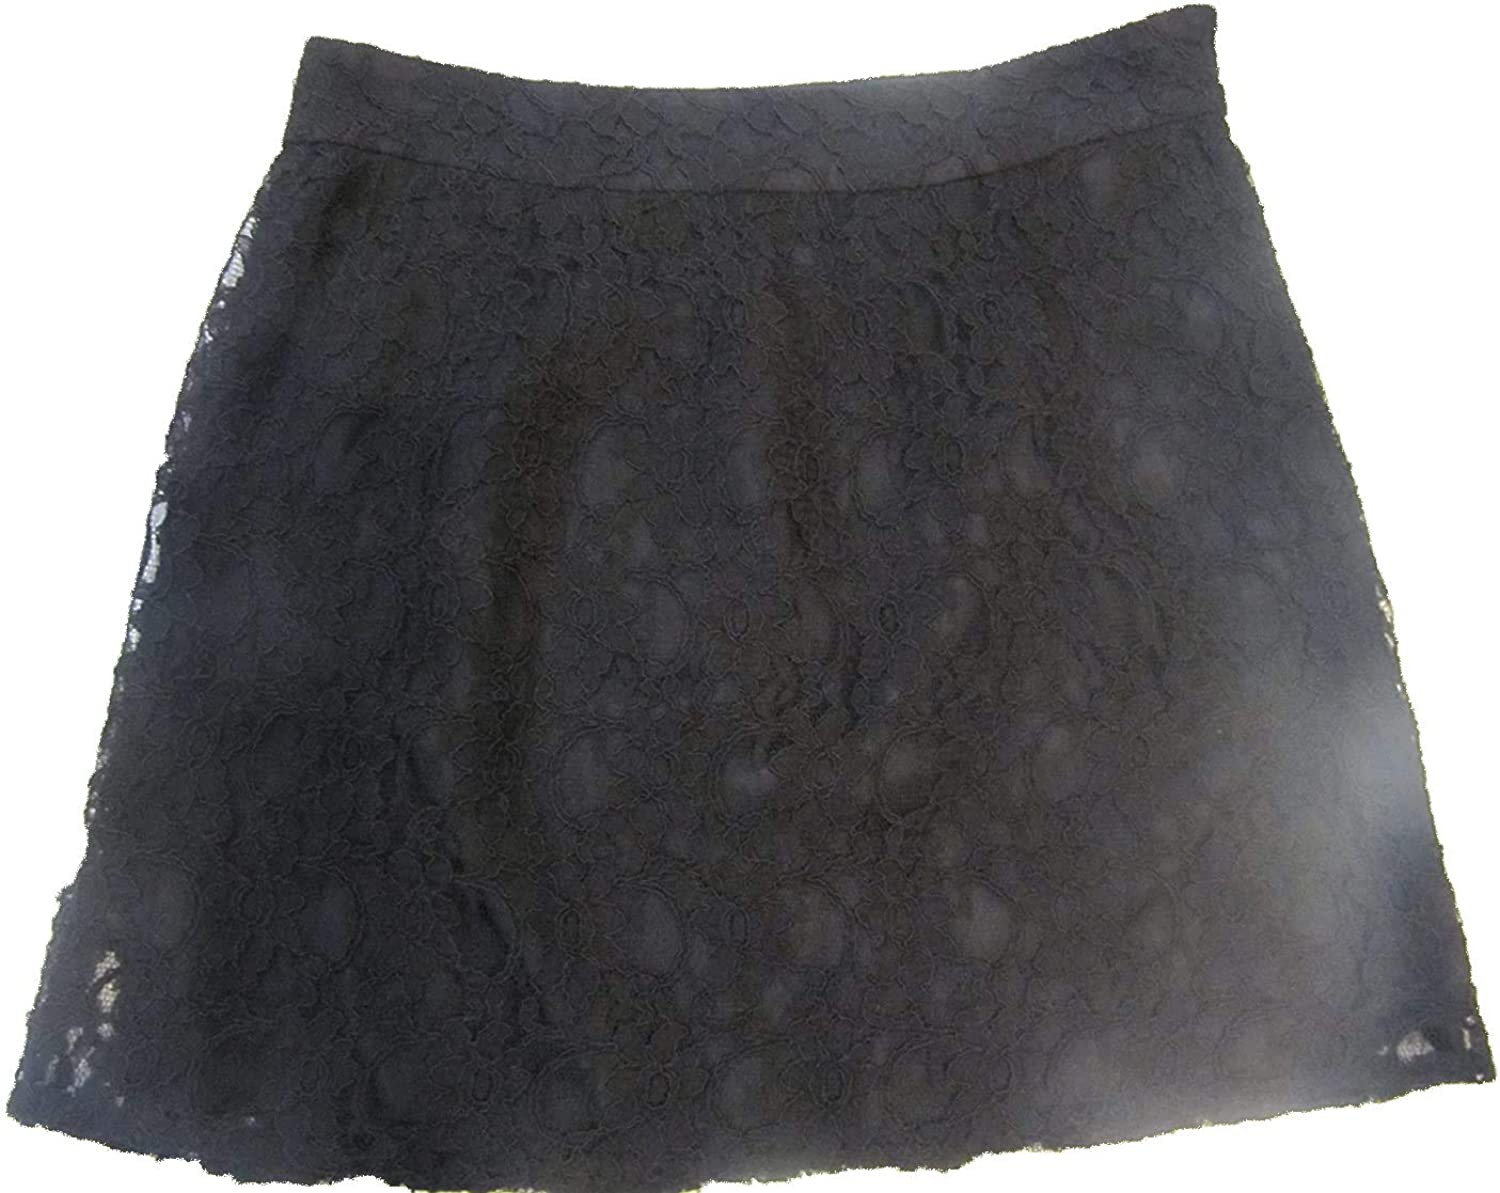 LAUNDRY Max 69% OFF A surprise price is realized BY SHELLI SEGAL Lace Skirt Black Size Line 6